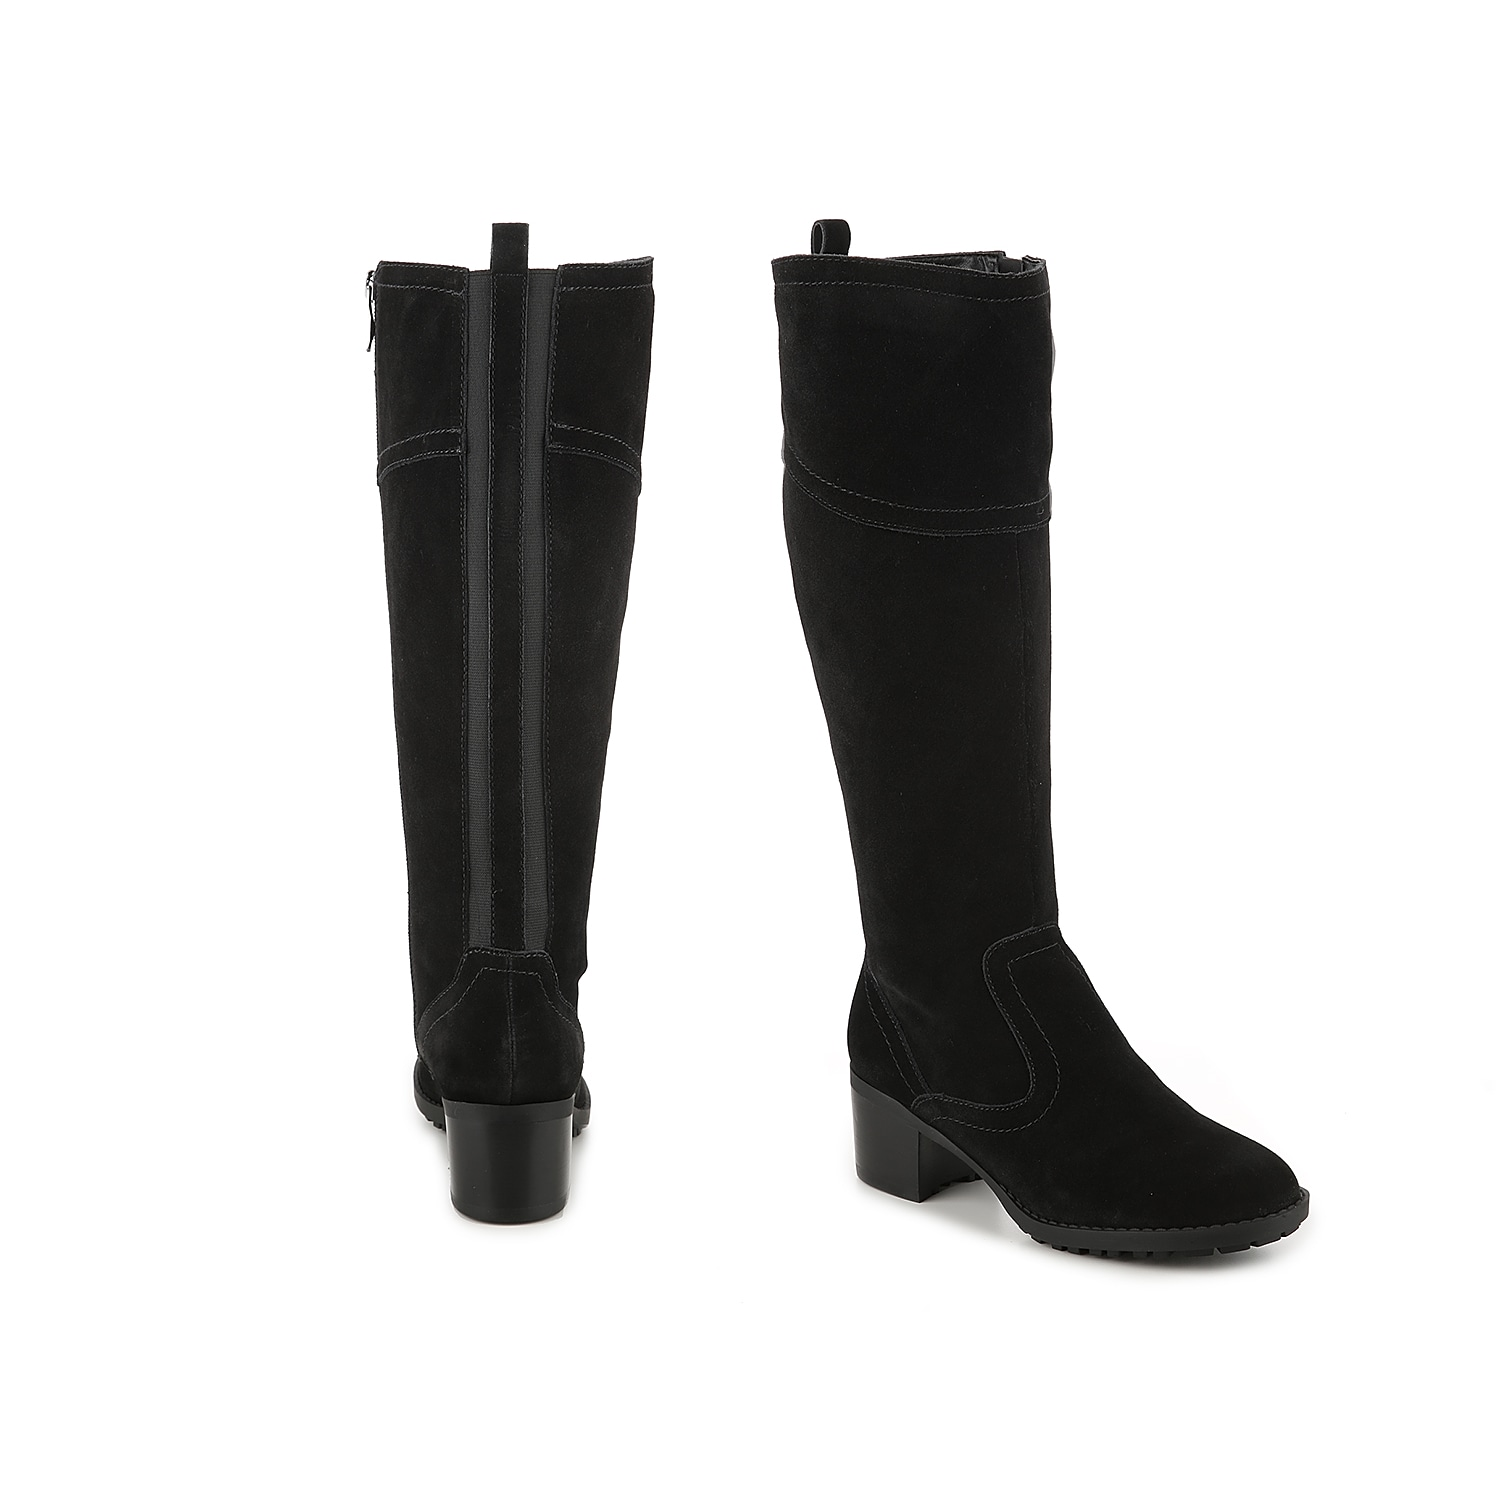 Take on the season in the savvy Grazes boot from Easy Spirit. Full-length elastic paneling along the shaft prep this tall boot with extra stretch that feels comfy and custom-fitted to you! Click here for Boot Measuring Guide.